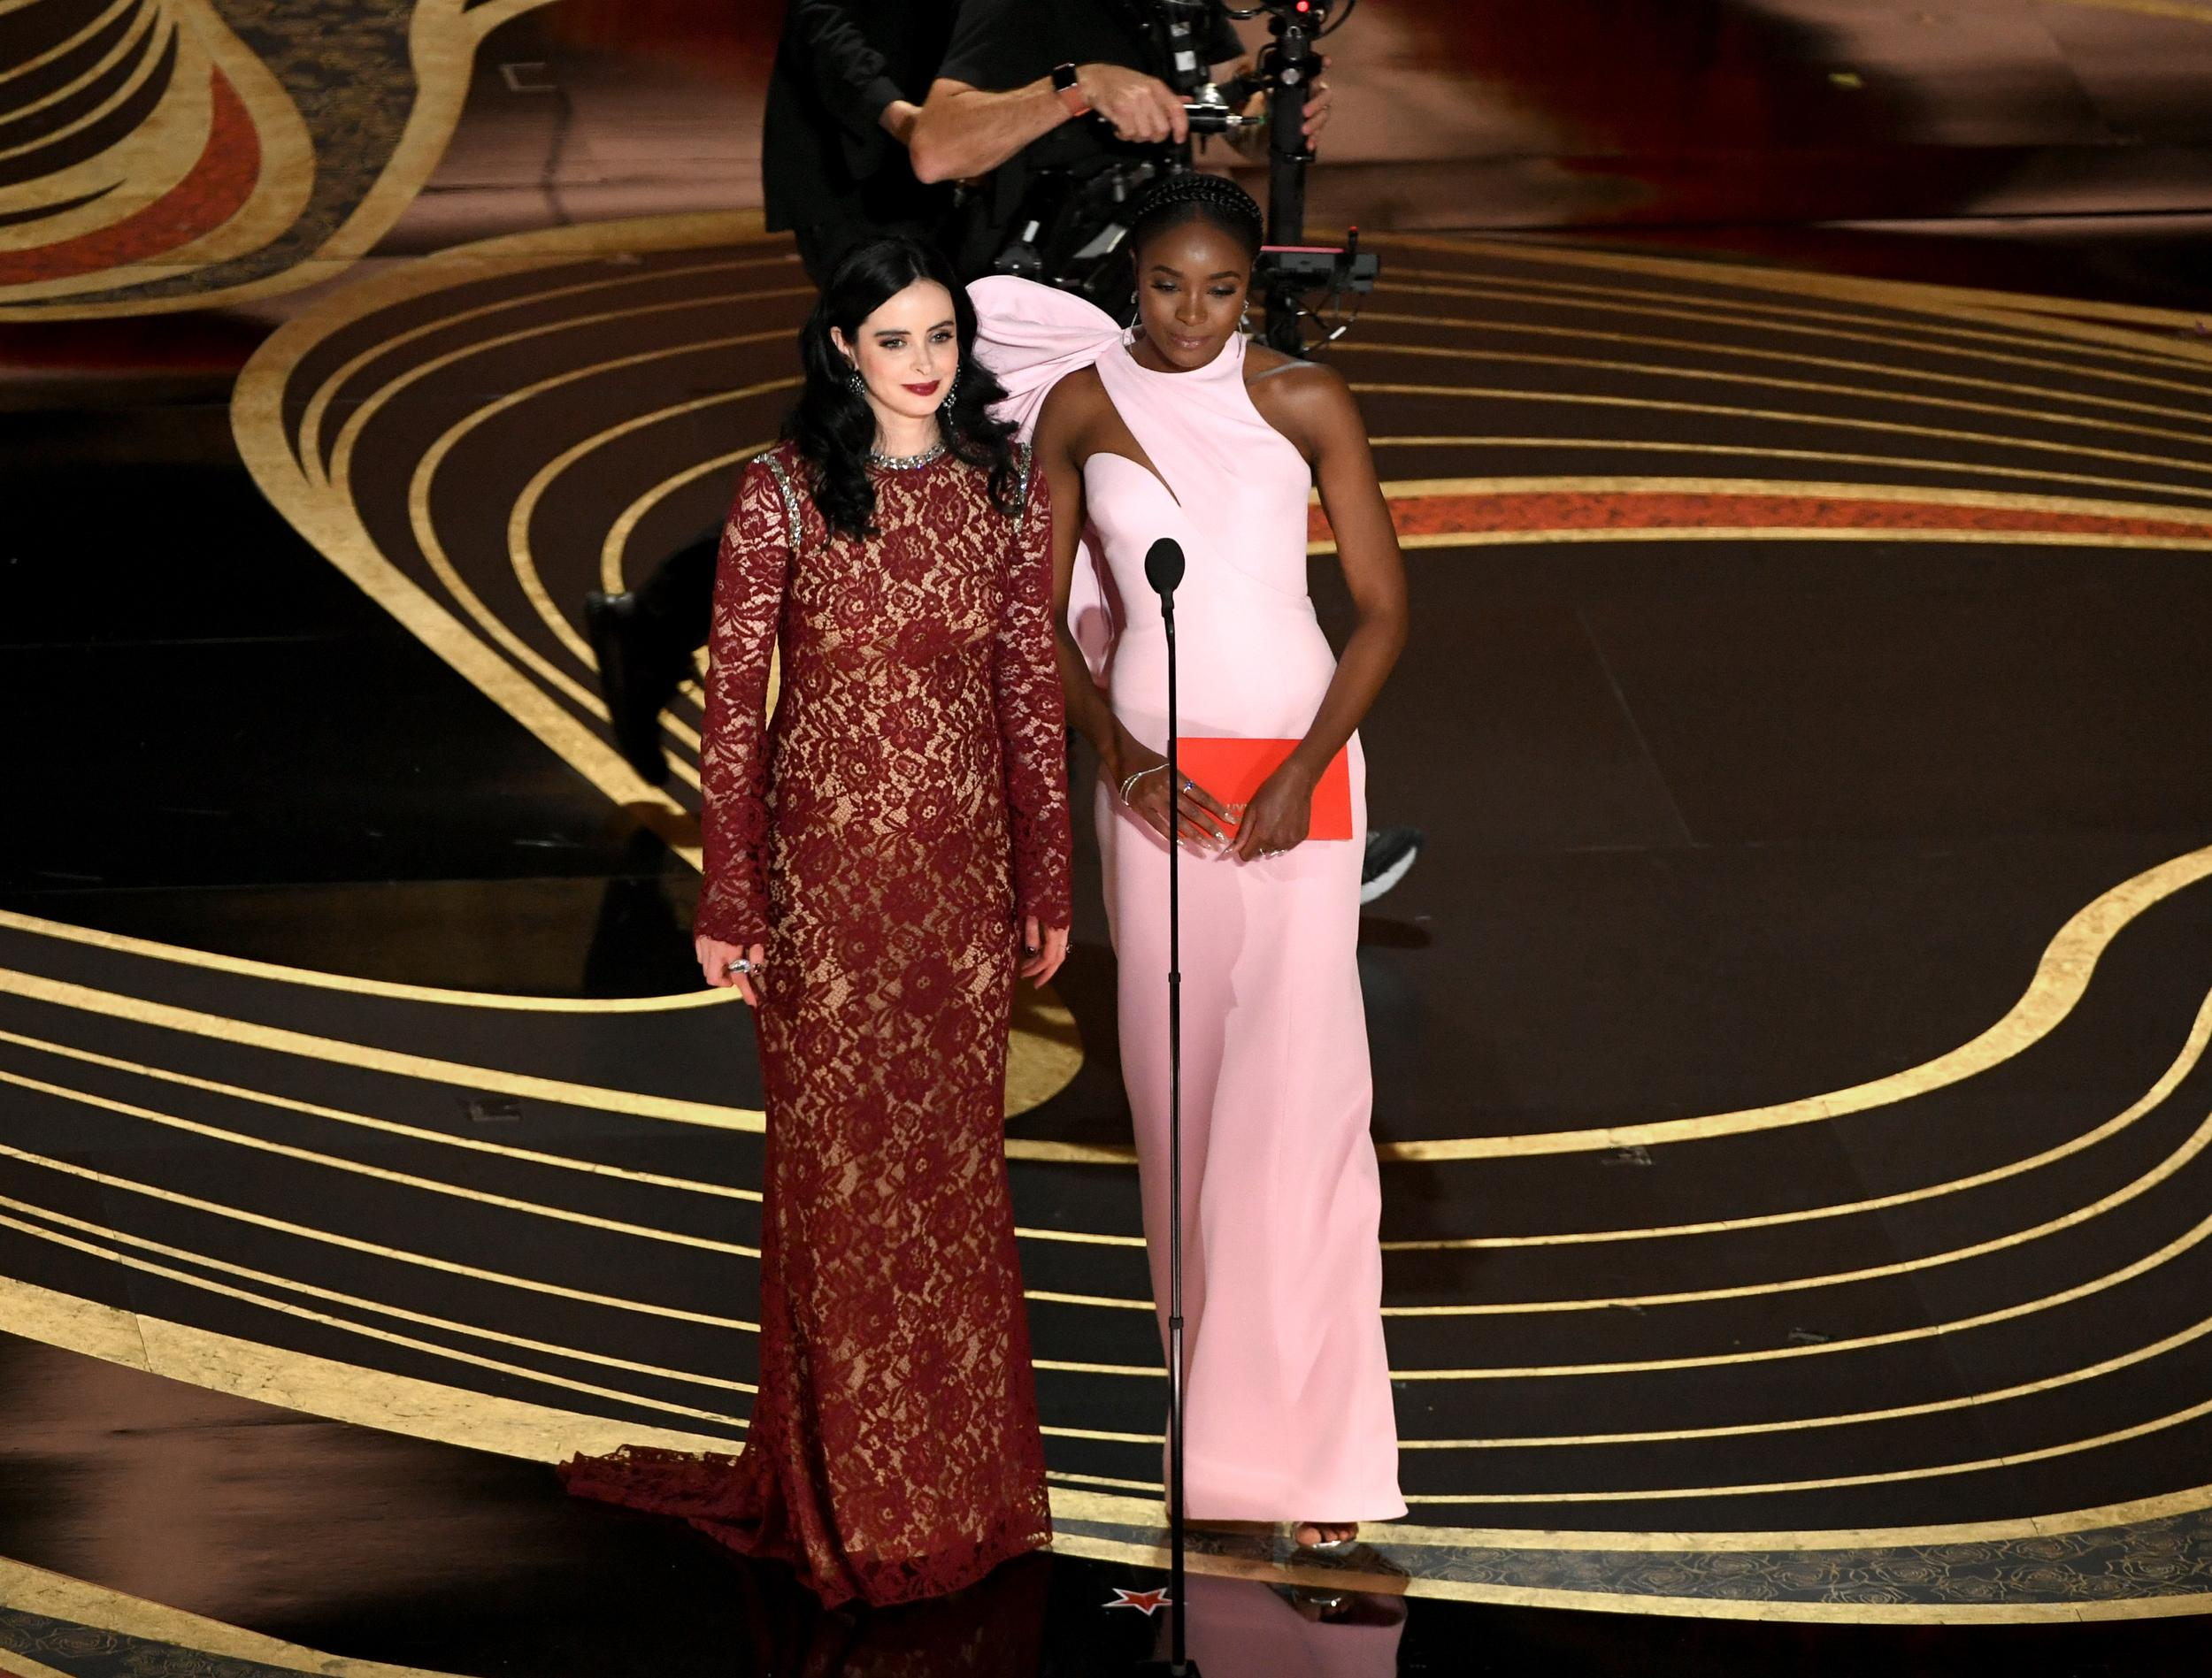 HOLLYWOOD, CALIFORNIA - FEBRUARY 24: (L-R) Krysten Ritter and KiKi Layne speak onstage during the 91st Annual Academy Awards at Dolby Theatre on February 24, 2019 in Hollywood, California. (Photo by Kevin Winter/Getty Images)